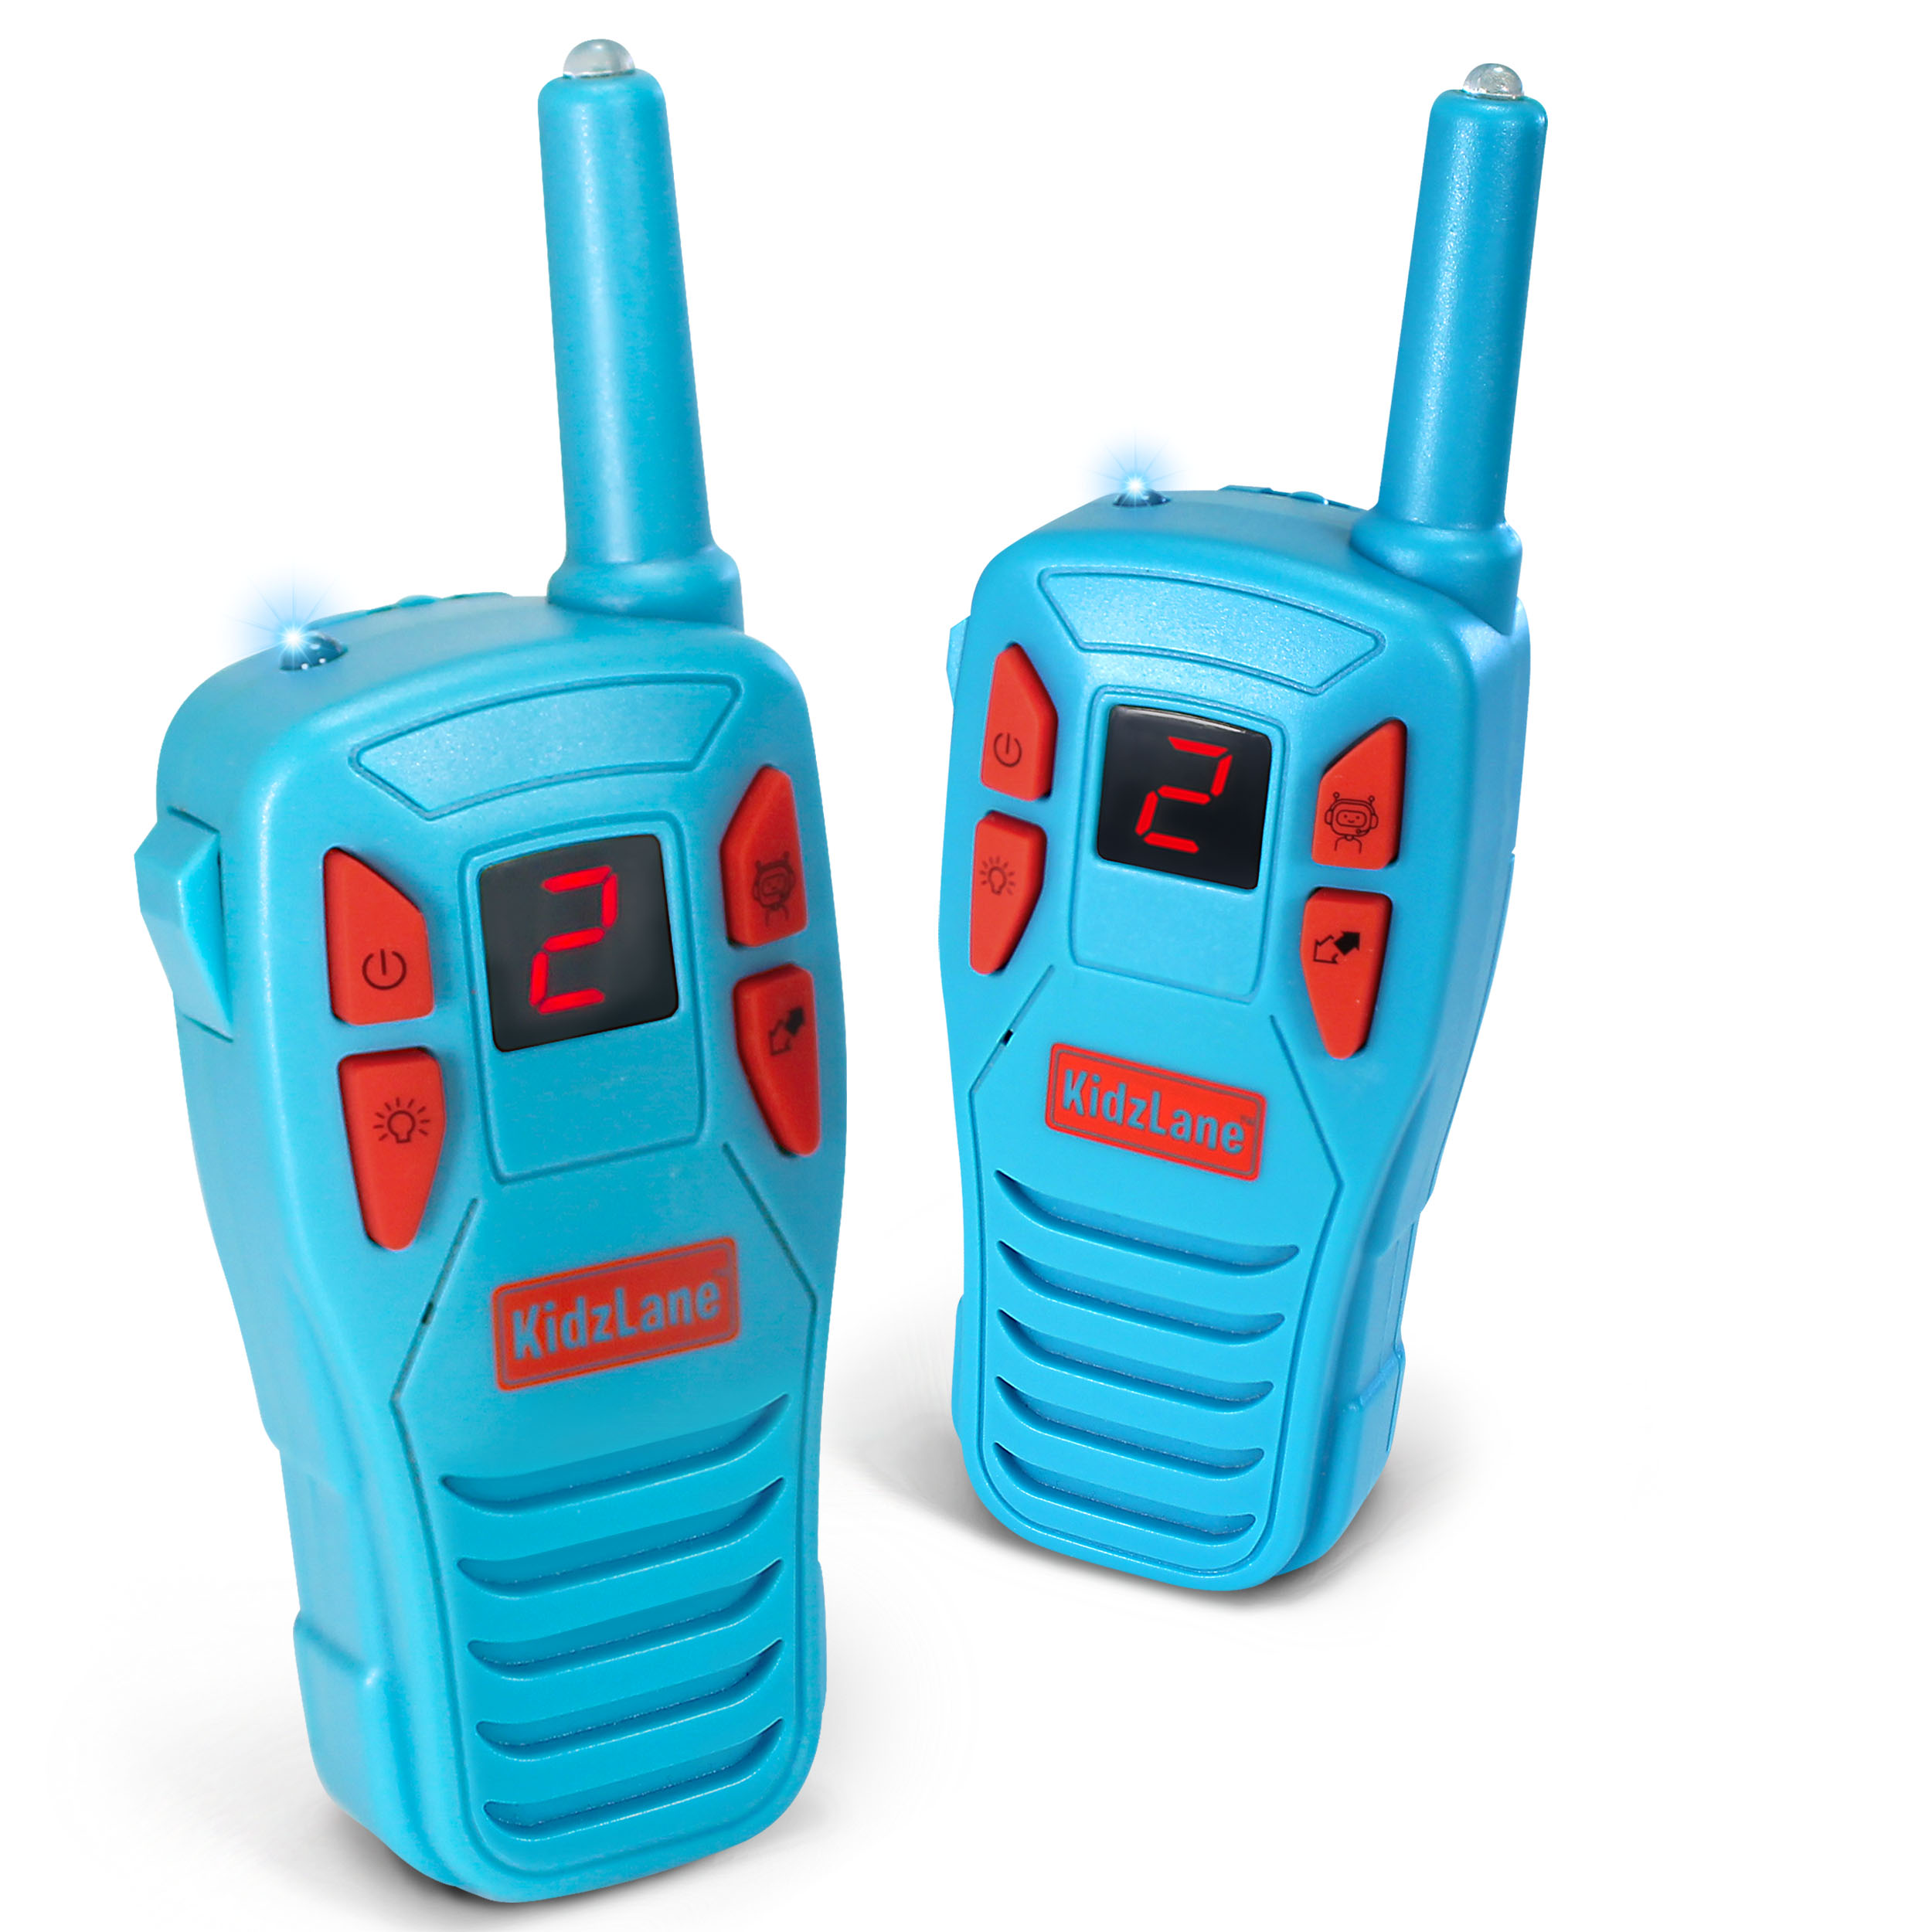 Voice Changing Walkie Talkies for Kids - 2 Mile Range, 8 Channels, Flashlight, & Call Alert …